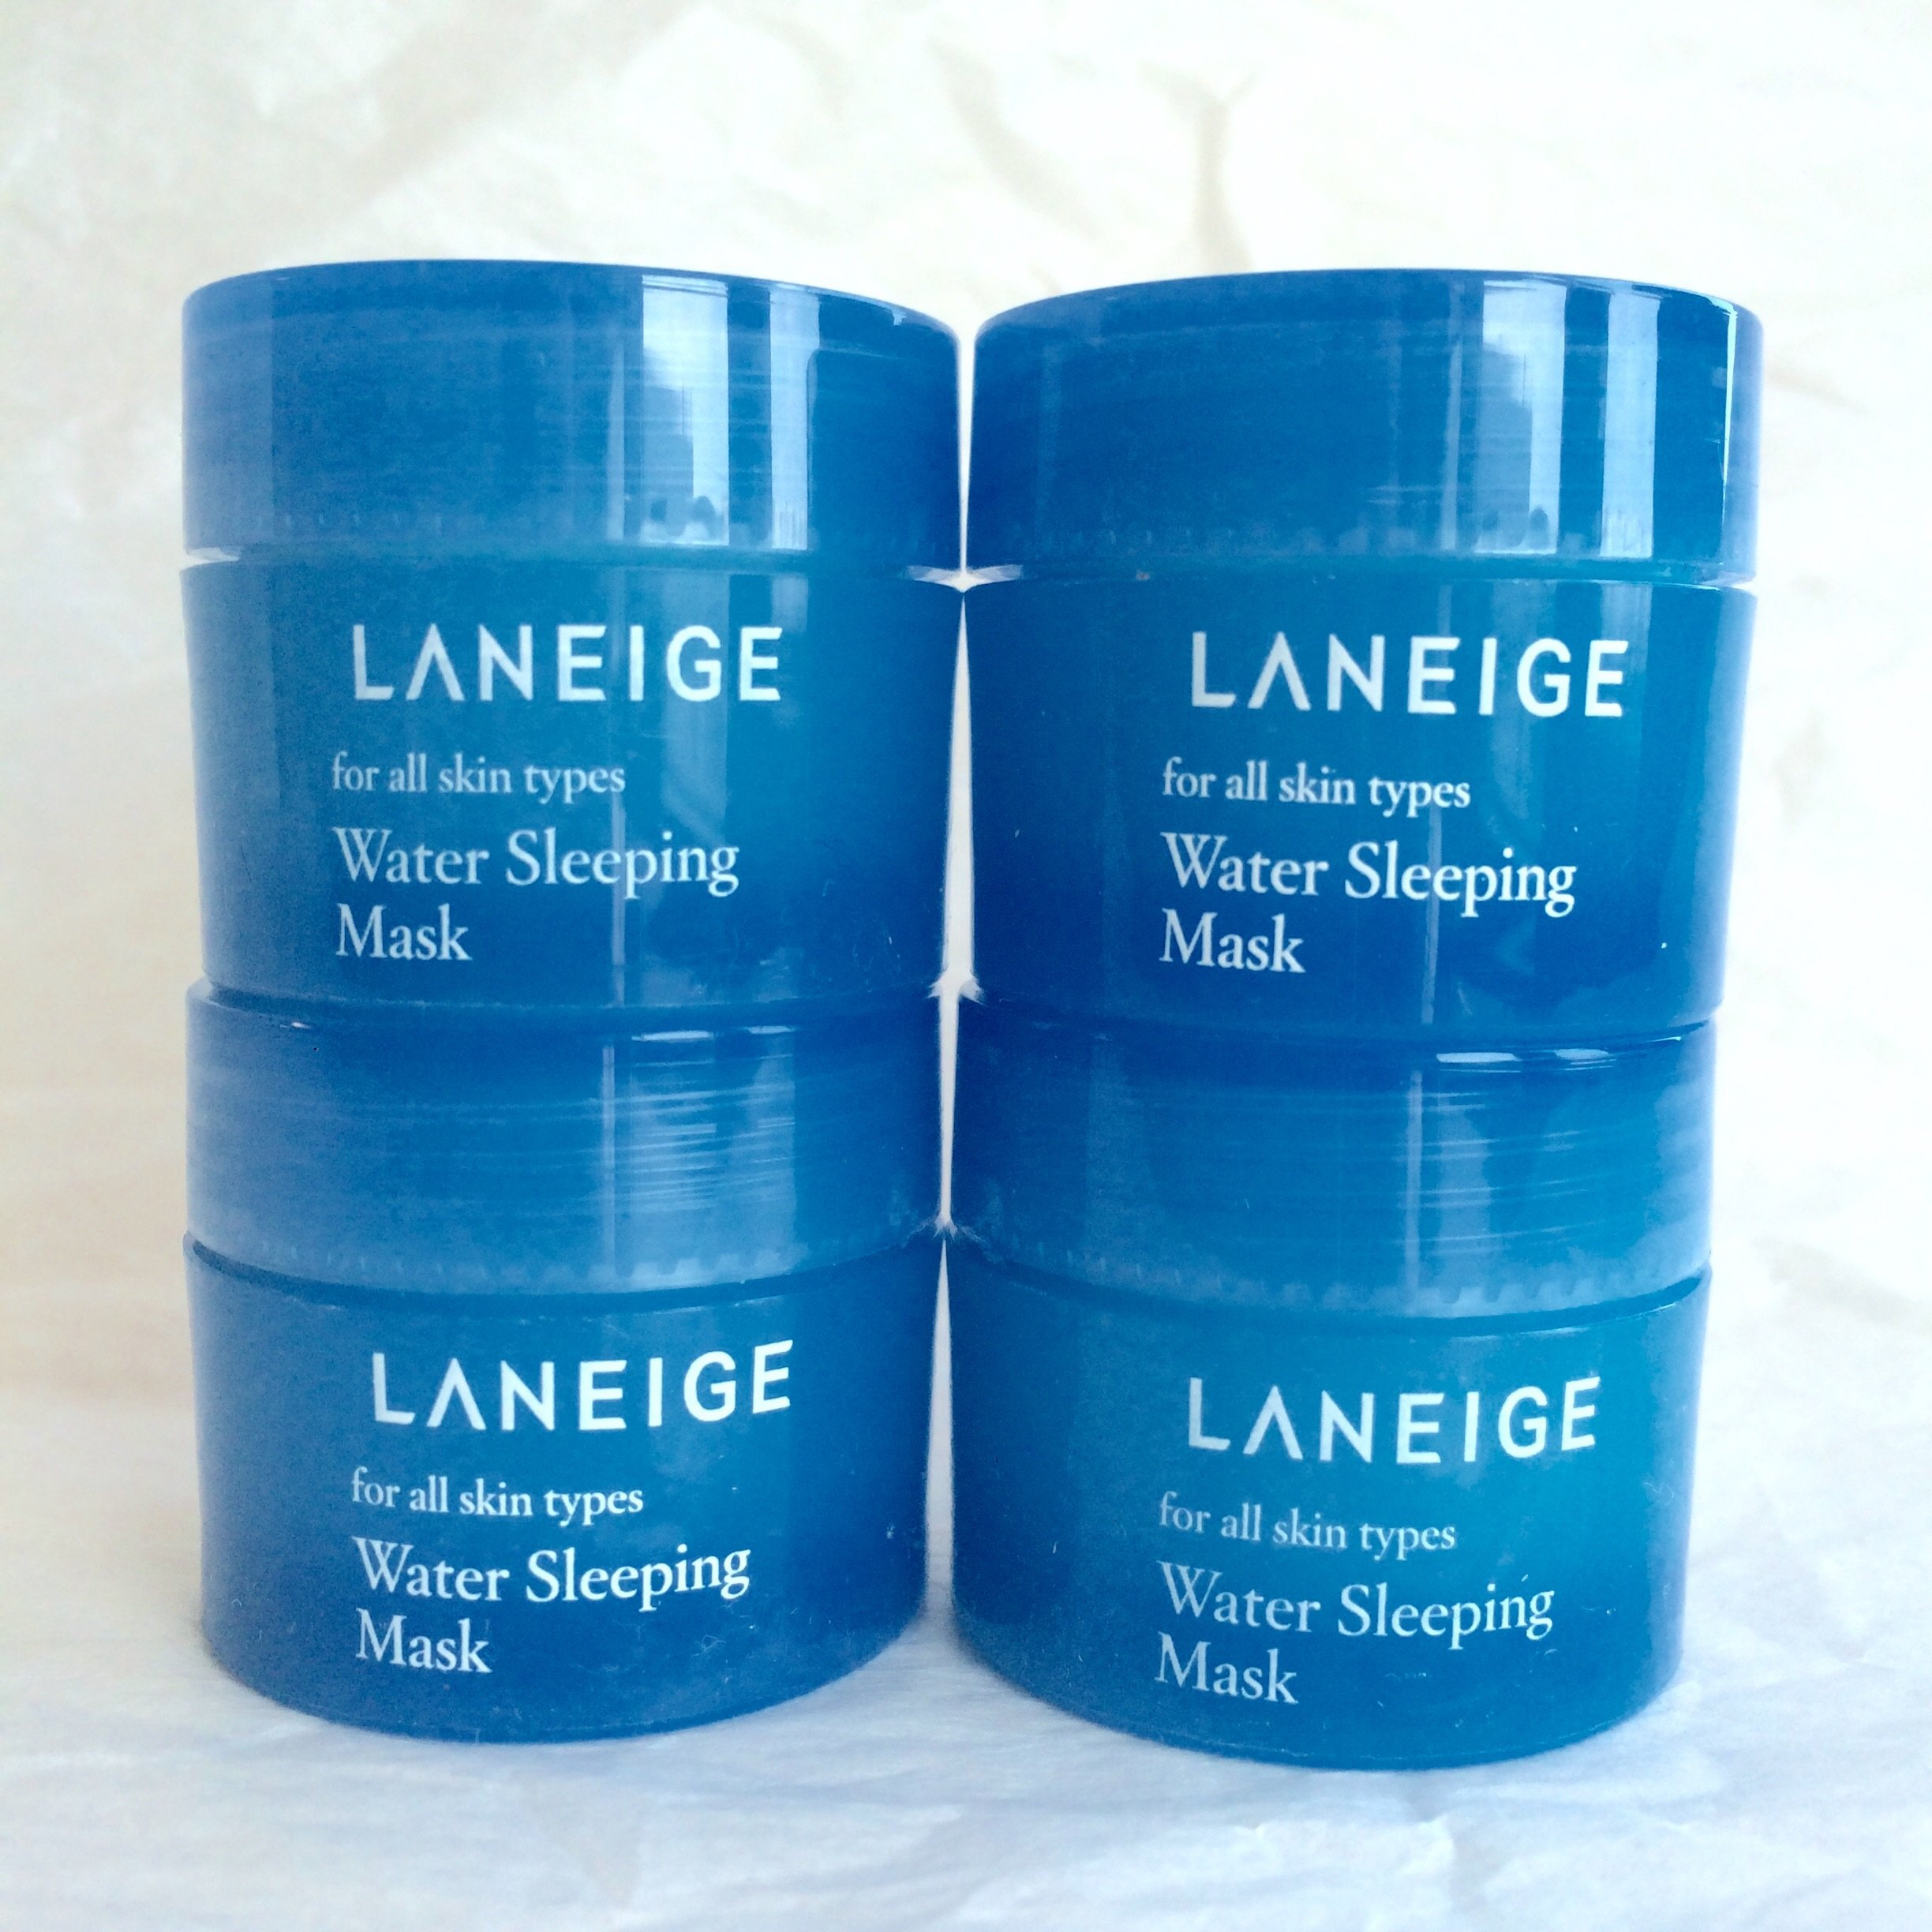 Laneige Lip Sleeping Mask 3g6pcs 18g Beauty 3gr 2015 New Version Water 60ml 15ml X 4pcs